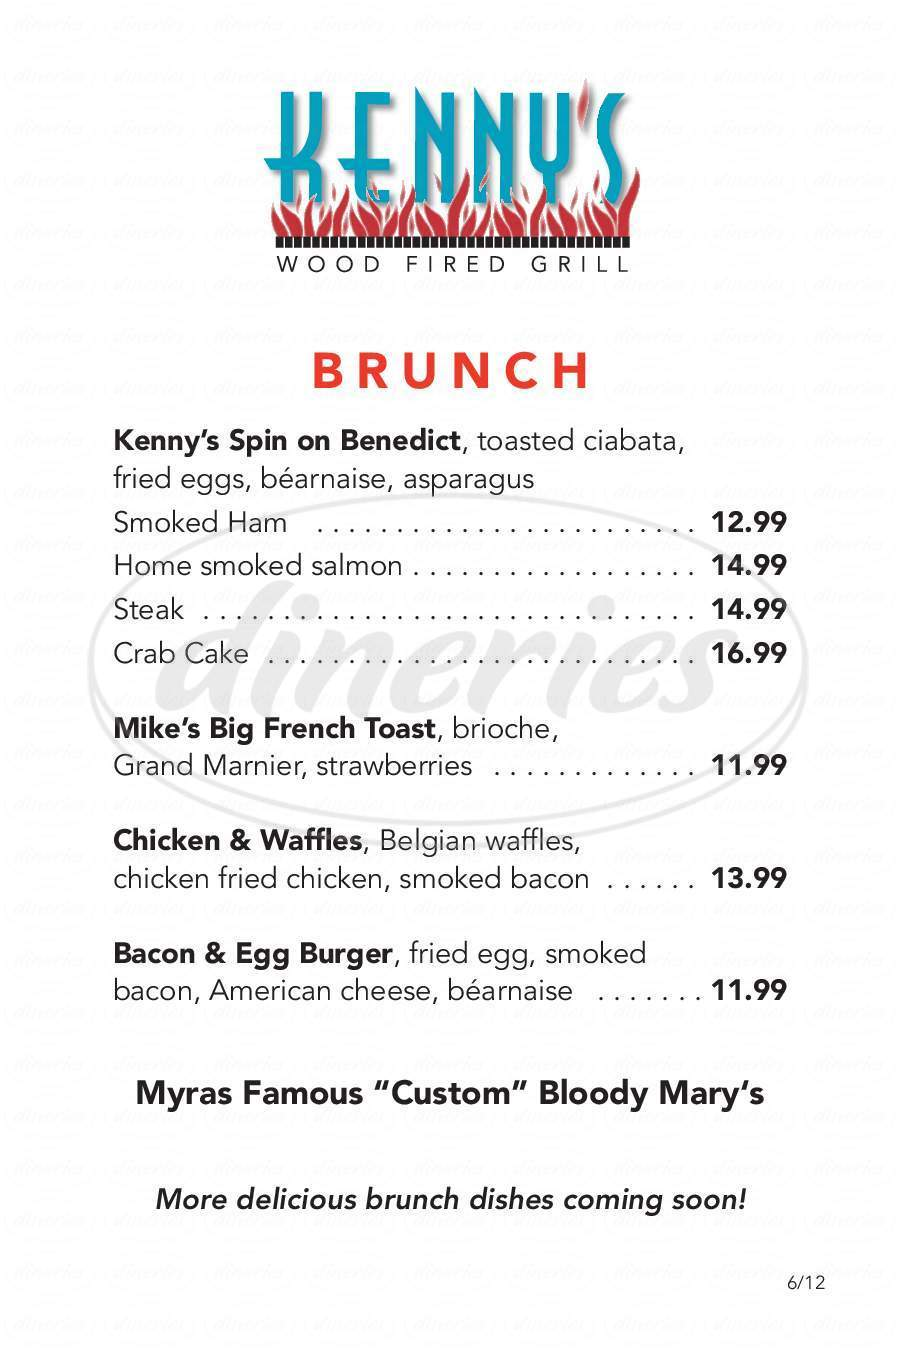 menu for Kenny's Wood Fired Grill